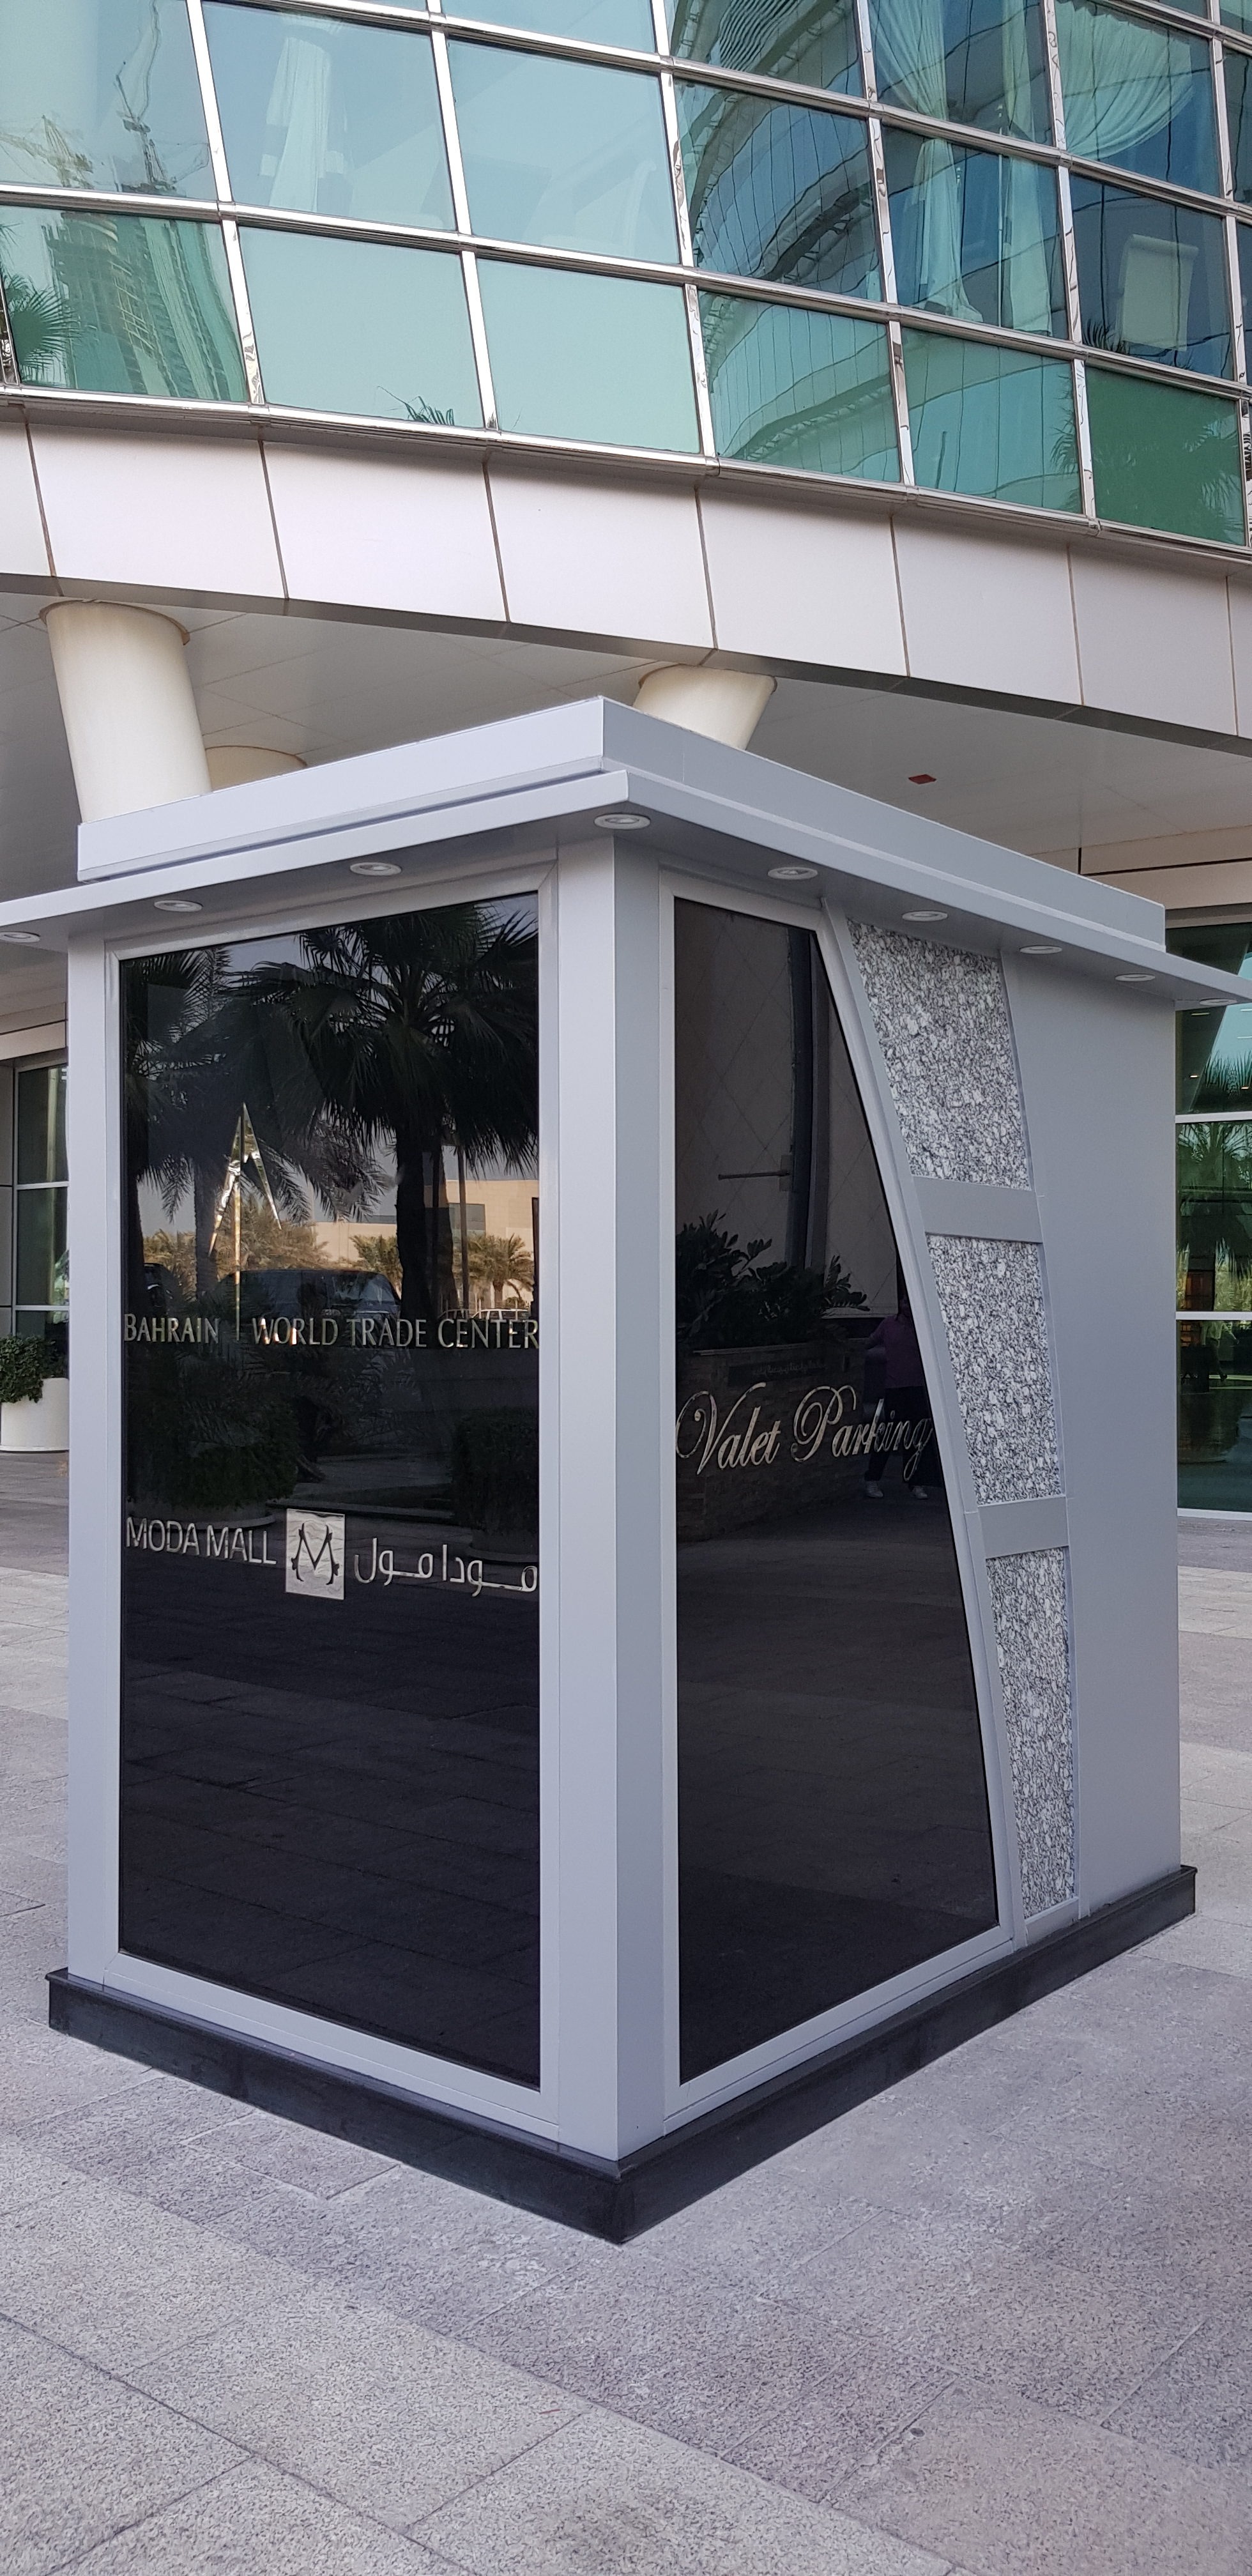 Design & Build Vallet parking Booth for Moda Mall